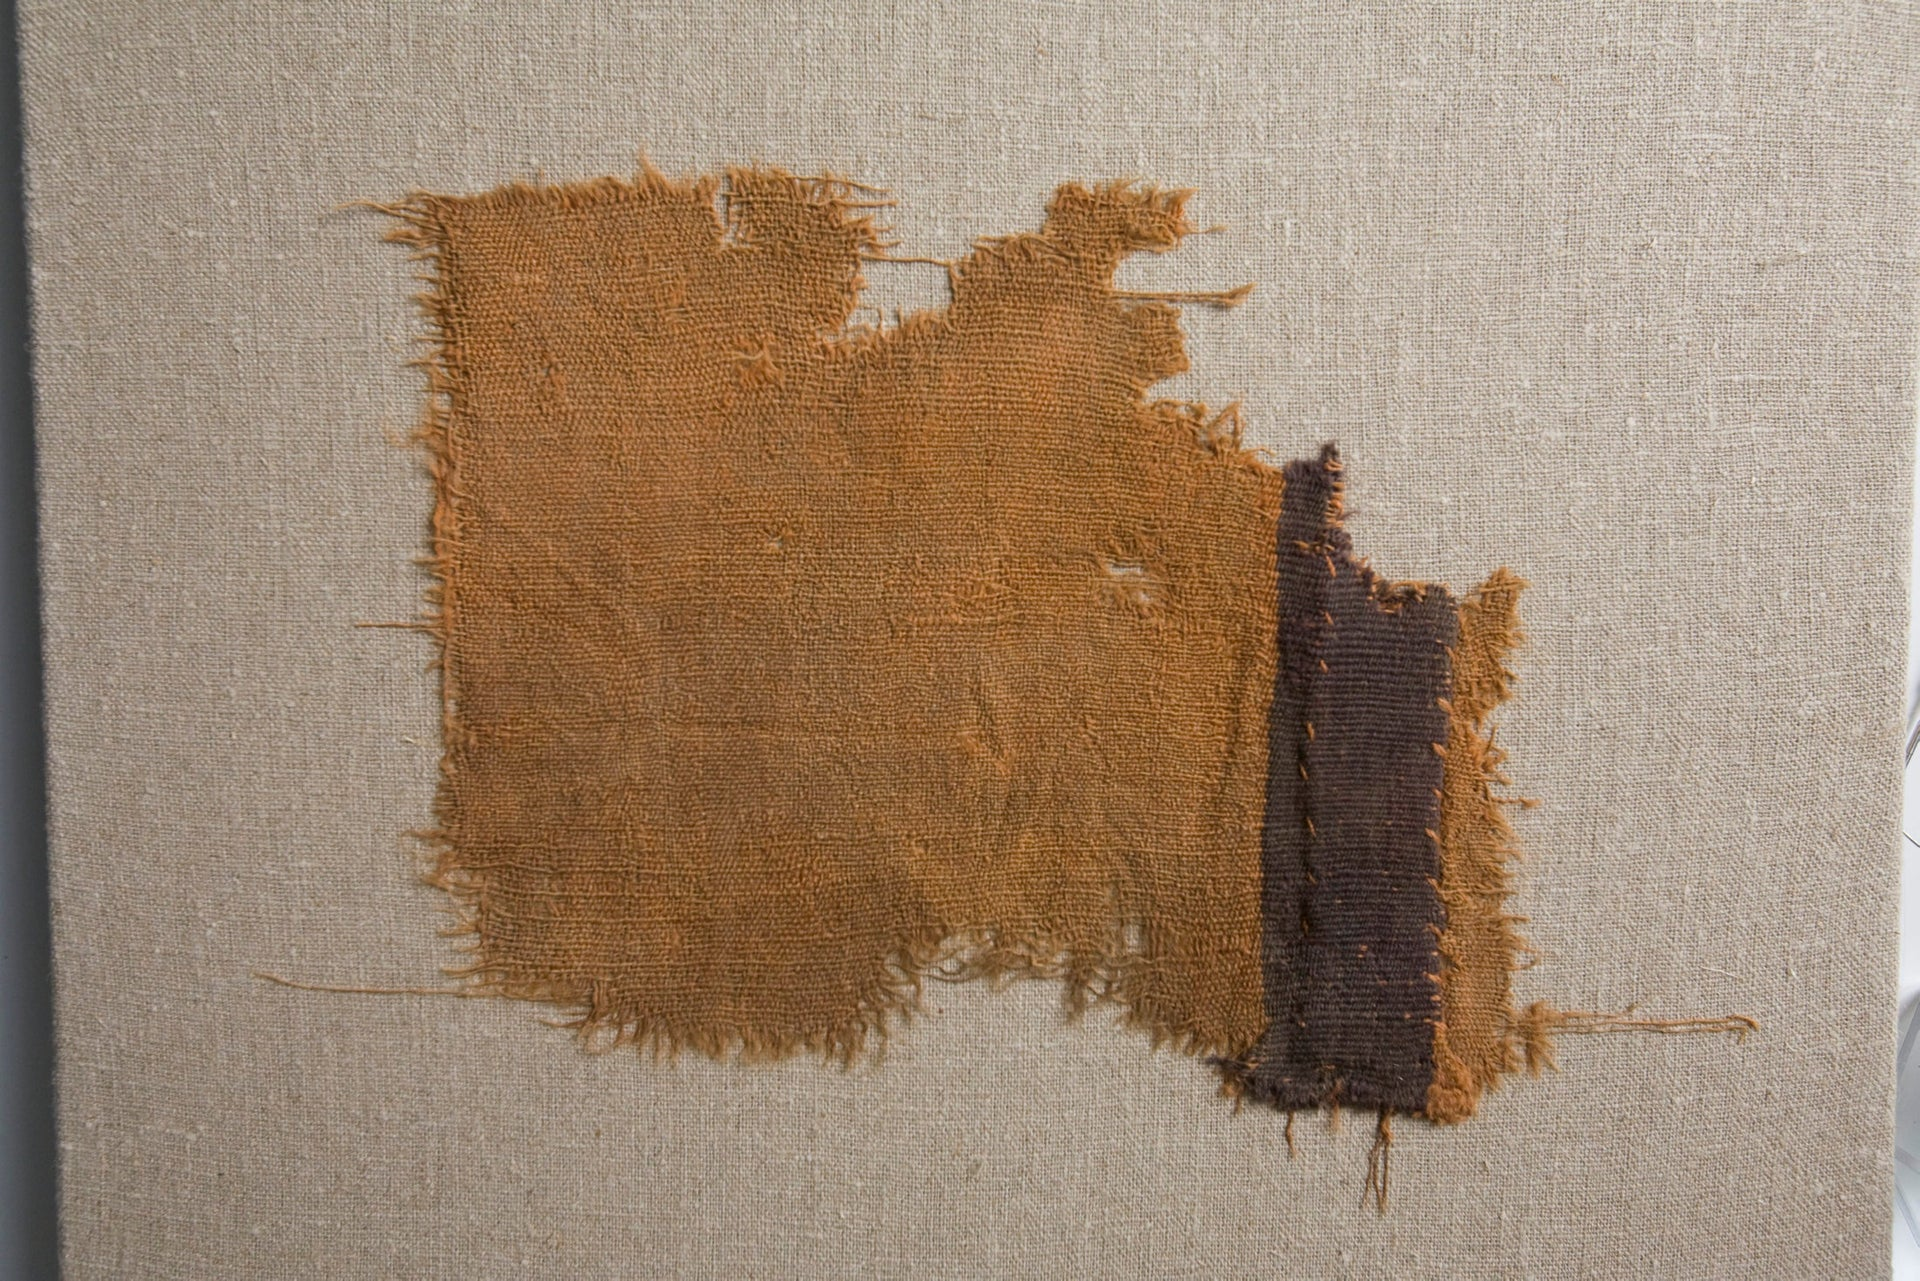 Woven textile found at Qumran caves, site of the Dead Sea Scrolls